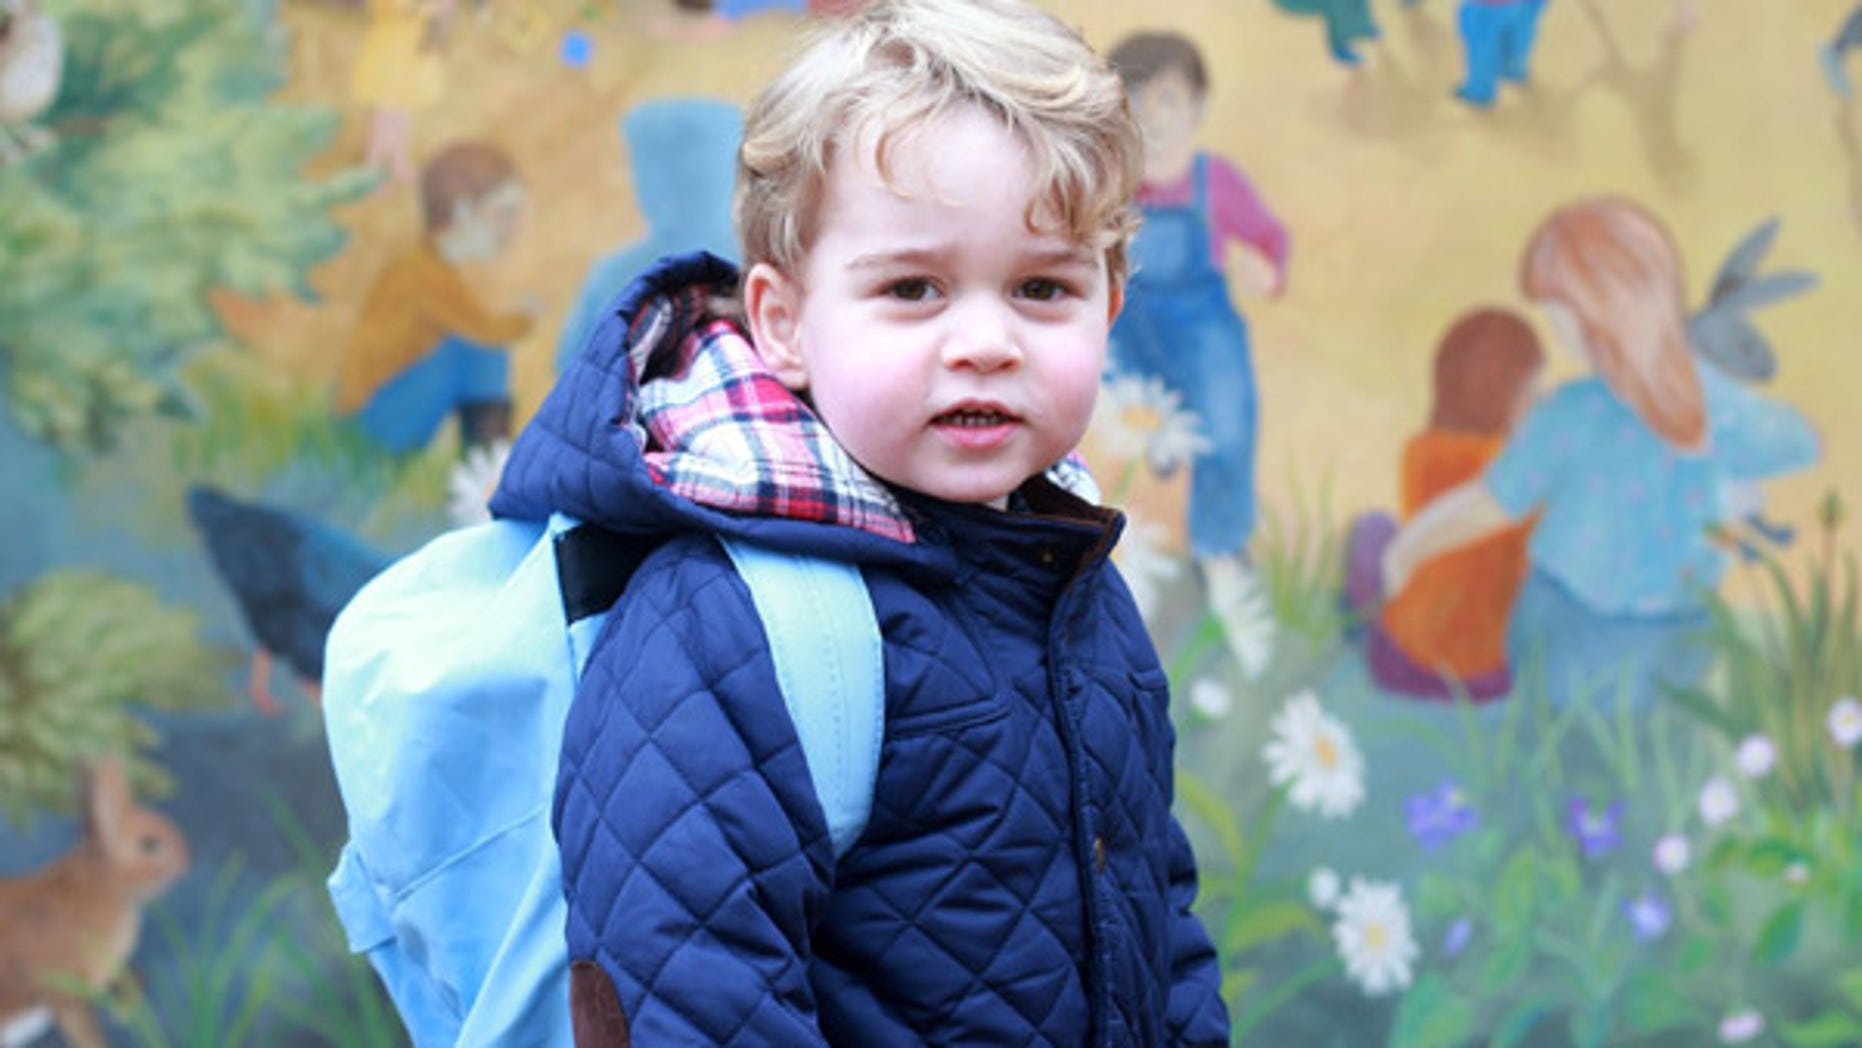 Jan. 6, 2016: In this handout photograph provided by Kensington Palace, taken by Kate, The Duchess of Cambridge, Britain's Prince George poses on his first day at the Westacre Montessori nursery school near Sandringham in Norfolk, England.